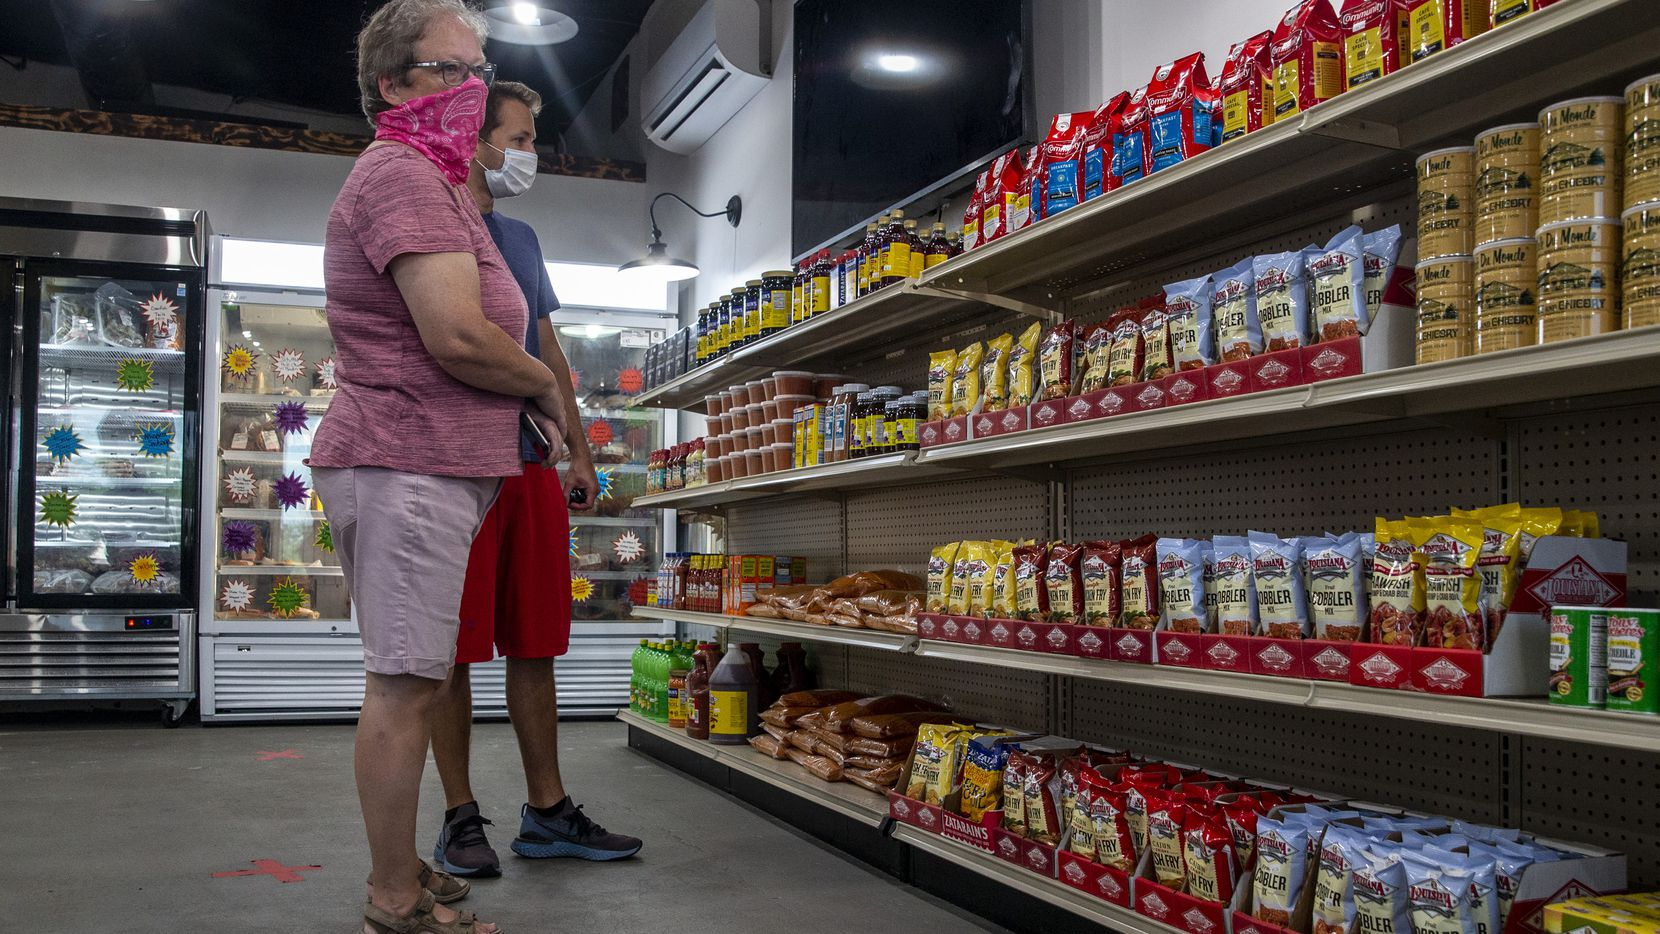 Cindy Brachey and her son, Tommy, peruse the market cajun convenience items kept in stock at T-JohnnyÕs Seafood and Cajun Market in Colleyville, Texas, on Wednesday, July 8, 2020. The establishment has experienced considerable success despite launching in the middle of the COVID-19 pandemic Ñ something owner Phil Tullis attributes to their dedication to authenticity. ÒThese are recipes we grew up with as kids,Ó said Tullis, who hails from Louisiana. ÒMy aim is to provide taste from back home. This is comfort food to a lot of people, especially in a time like this.Ó (Lynda M. Gonzalez/The Dallas Morning News)